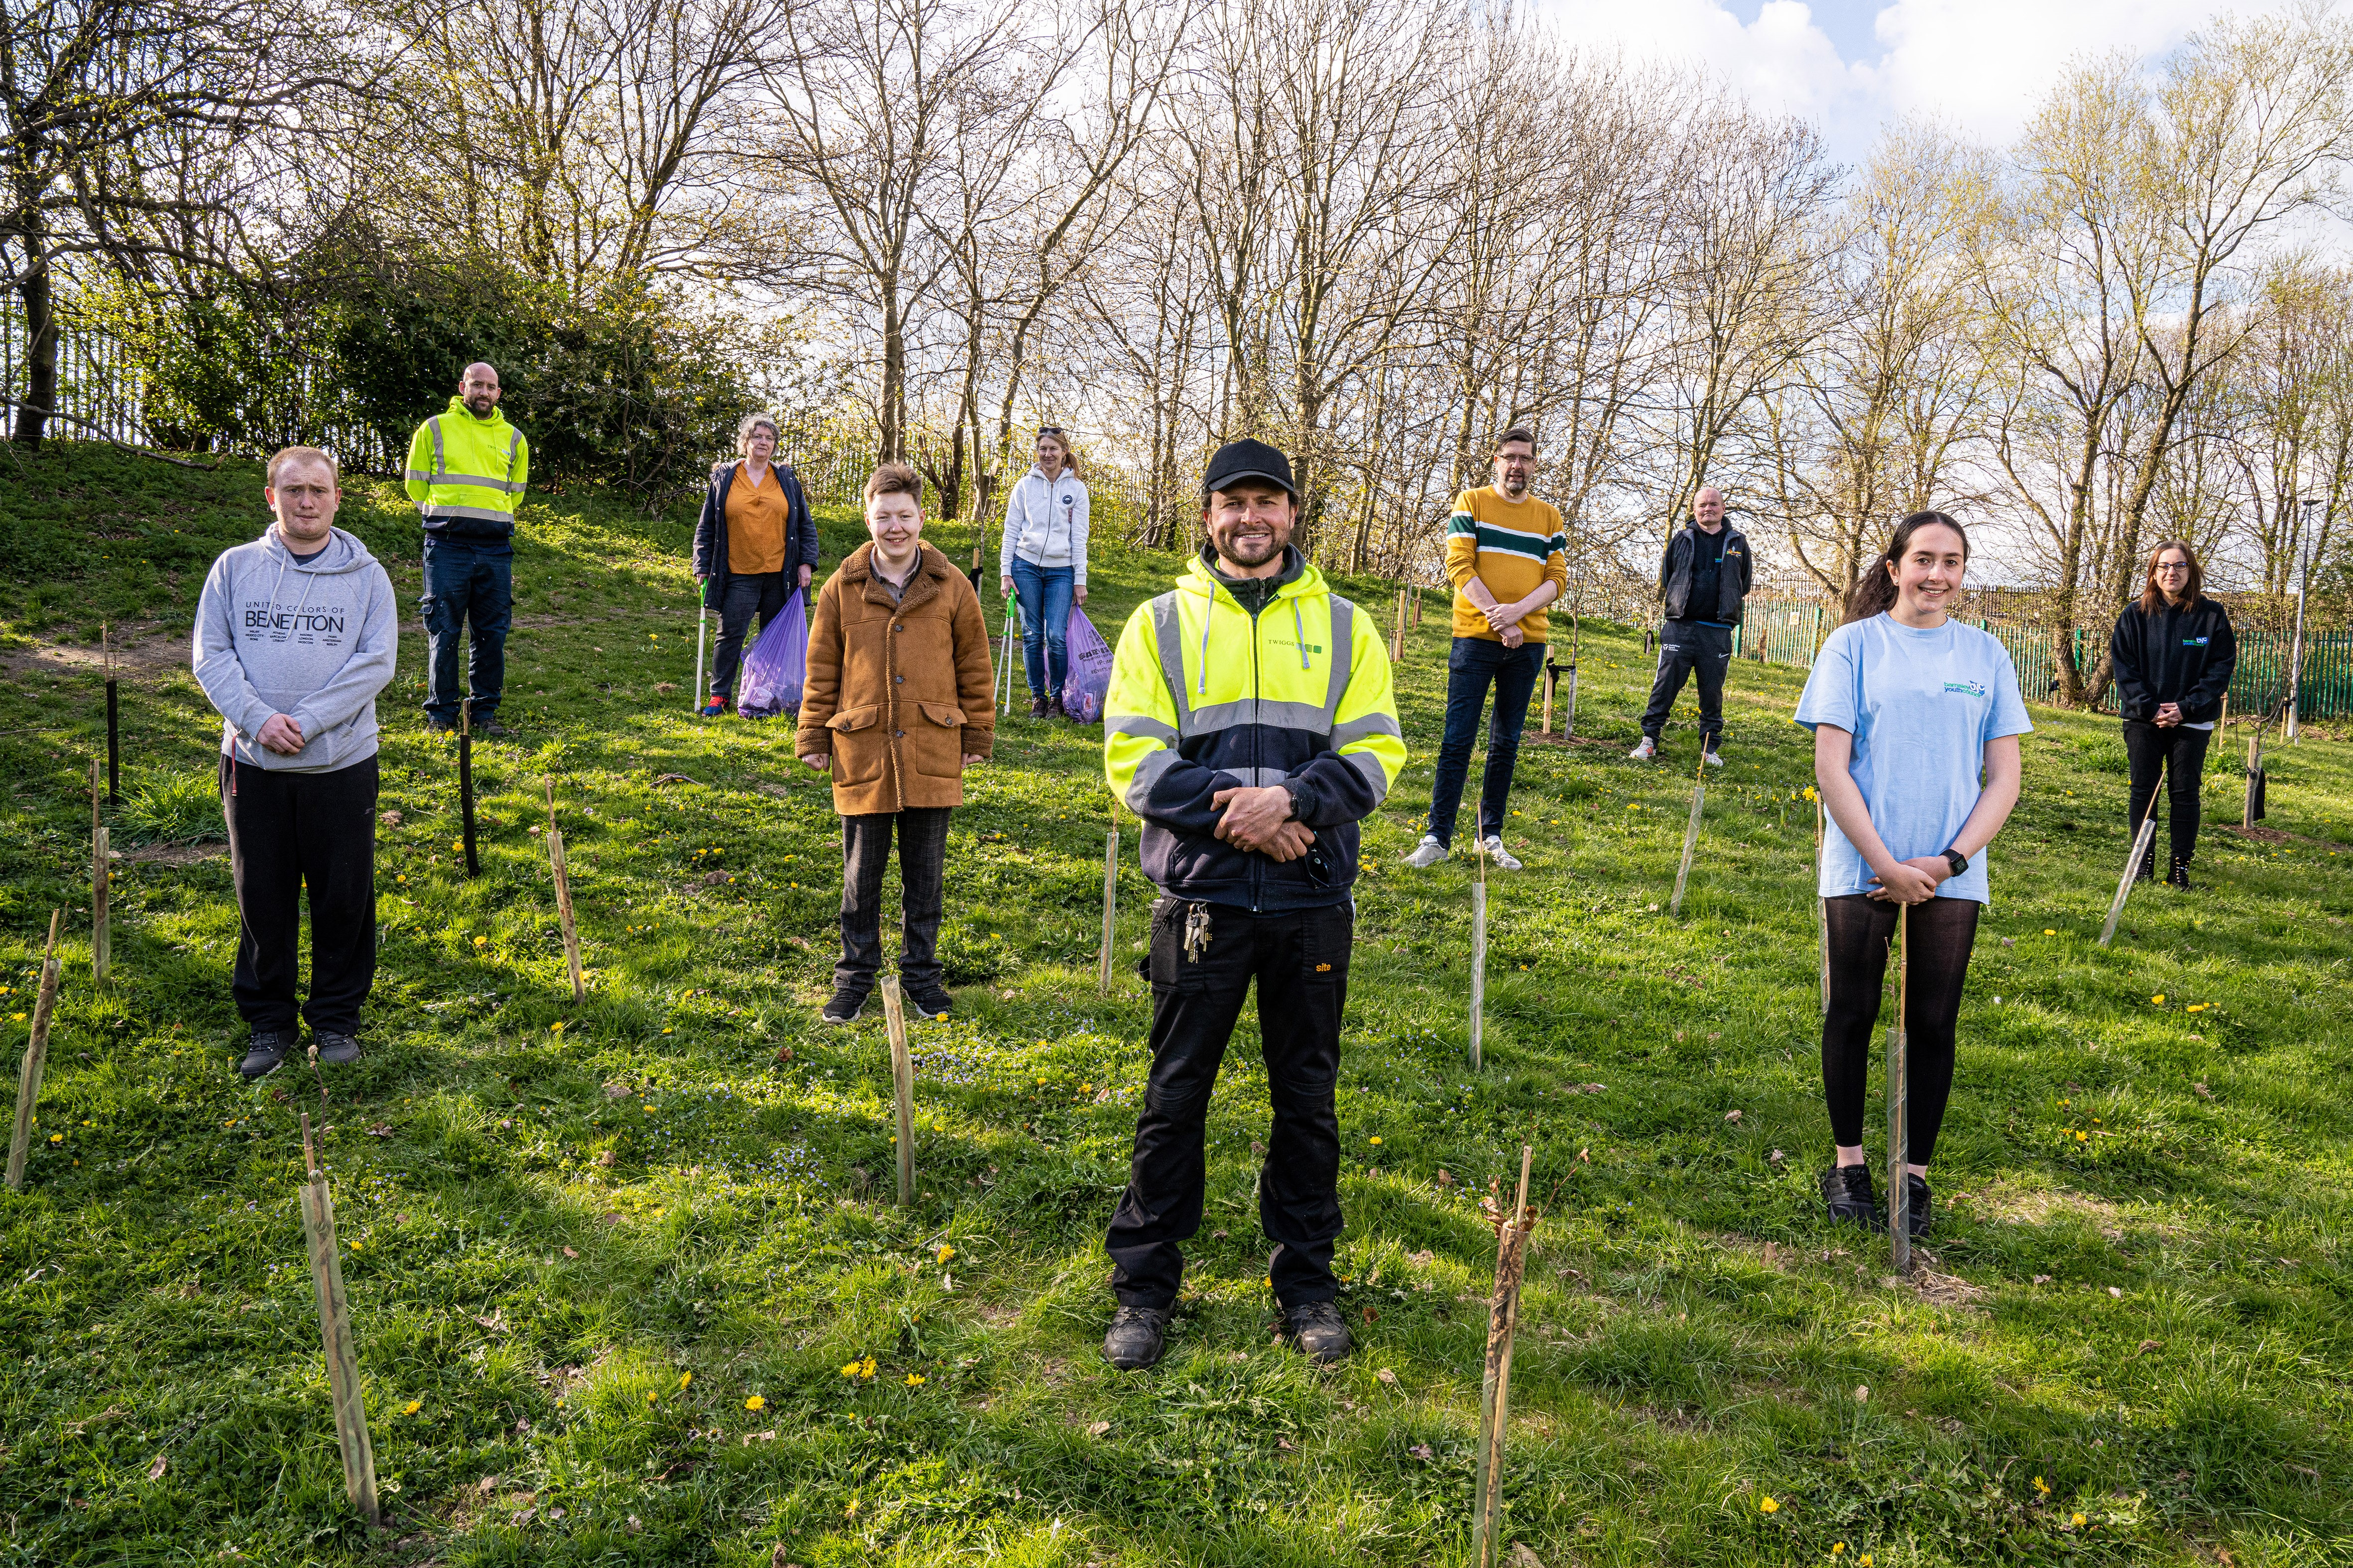 Group photo of young people and Twiggs planting trees